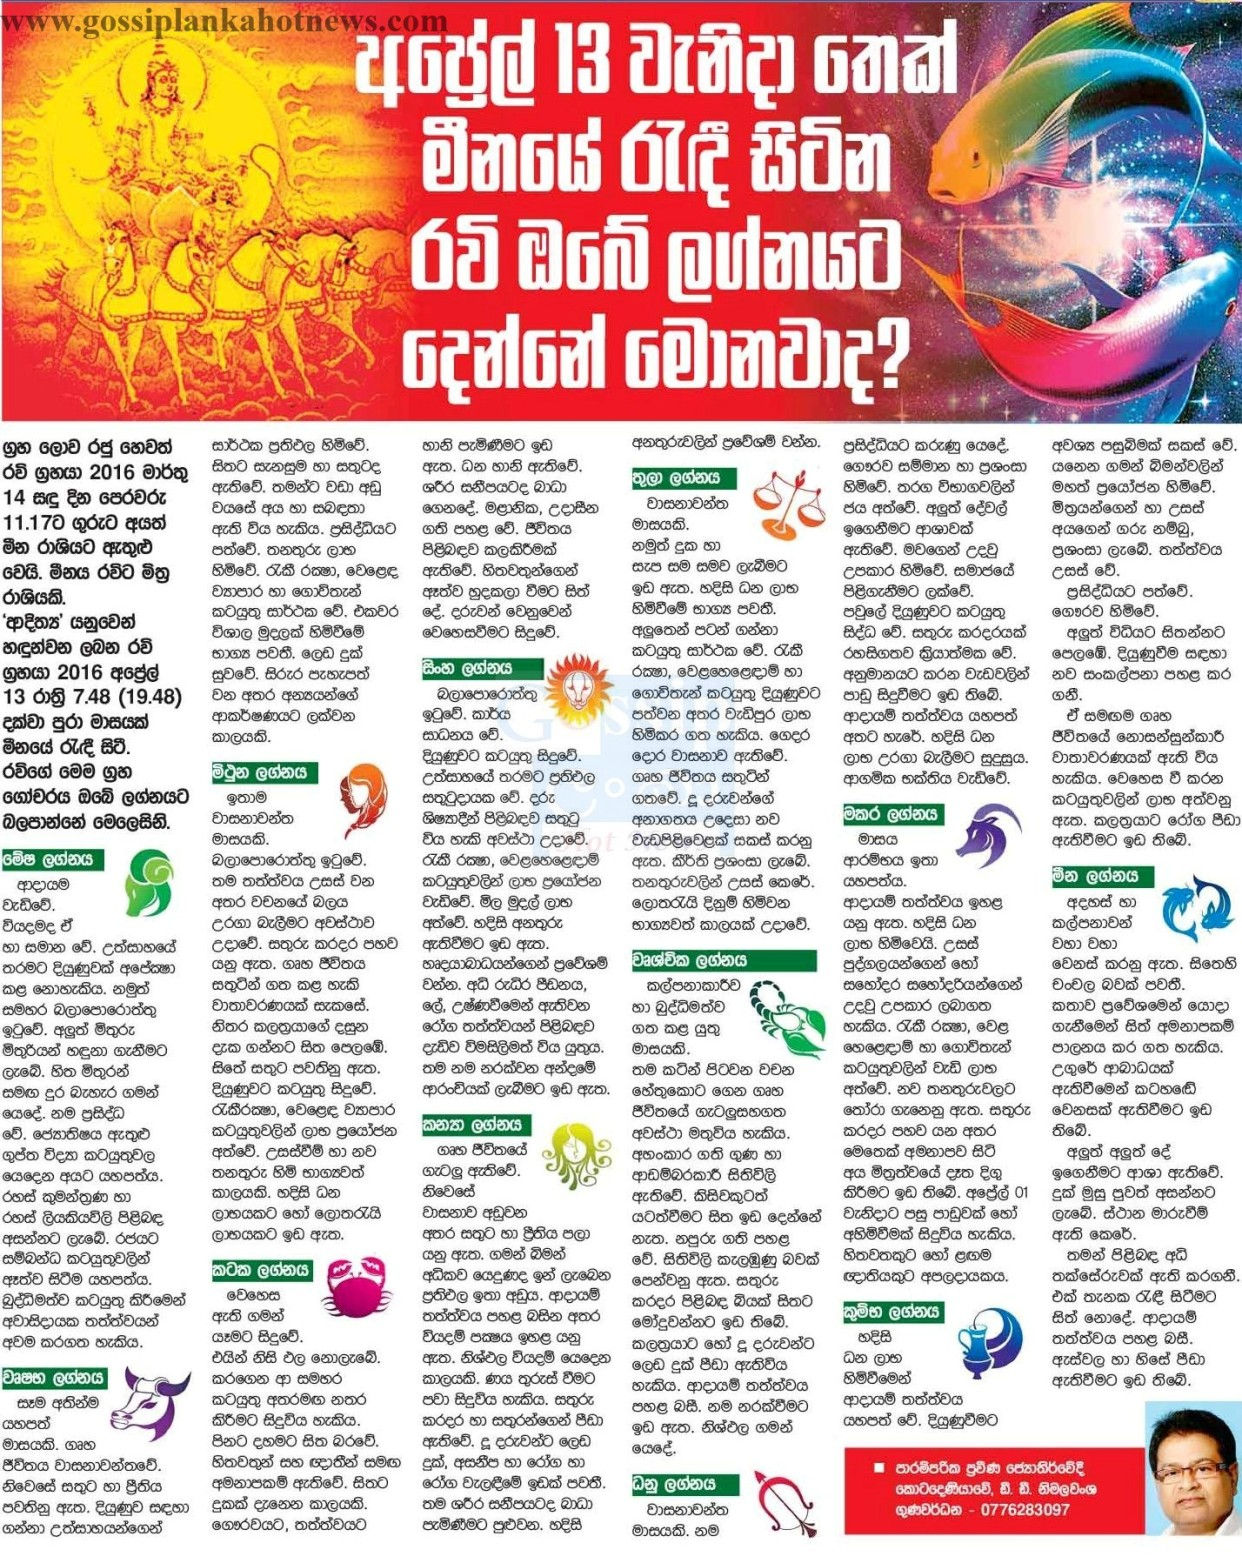 horoscope sinhala article, ravi maruwa